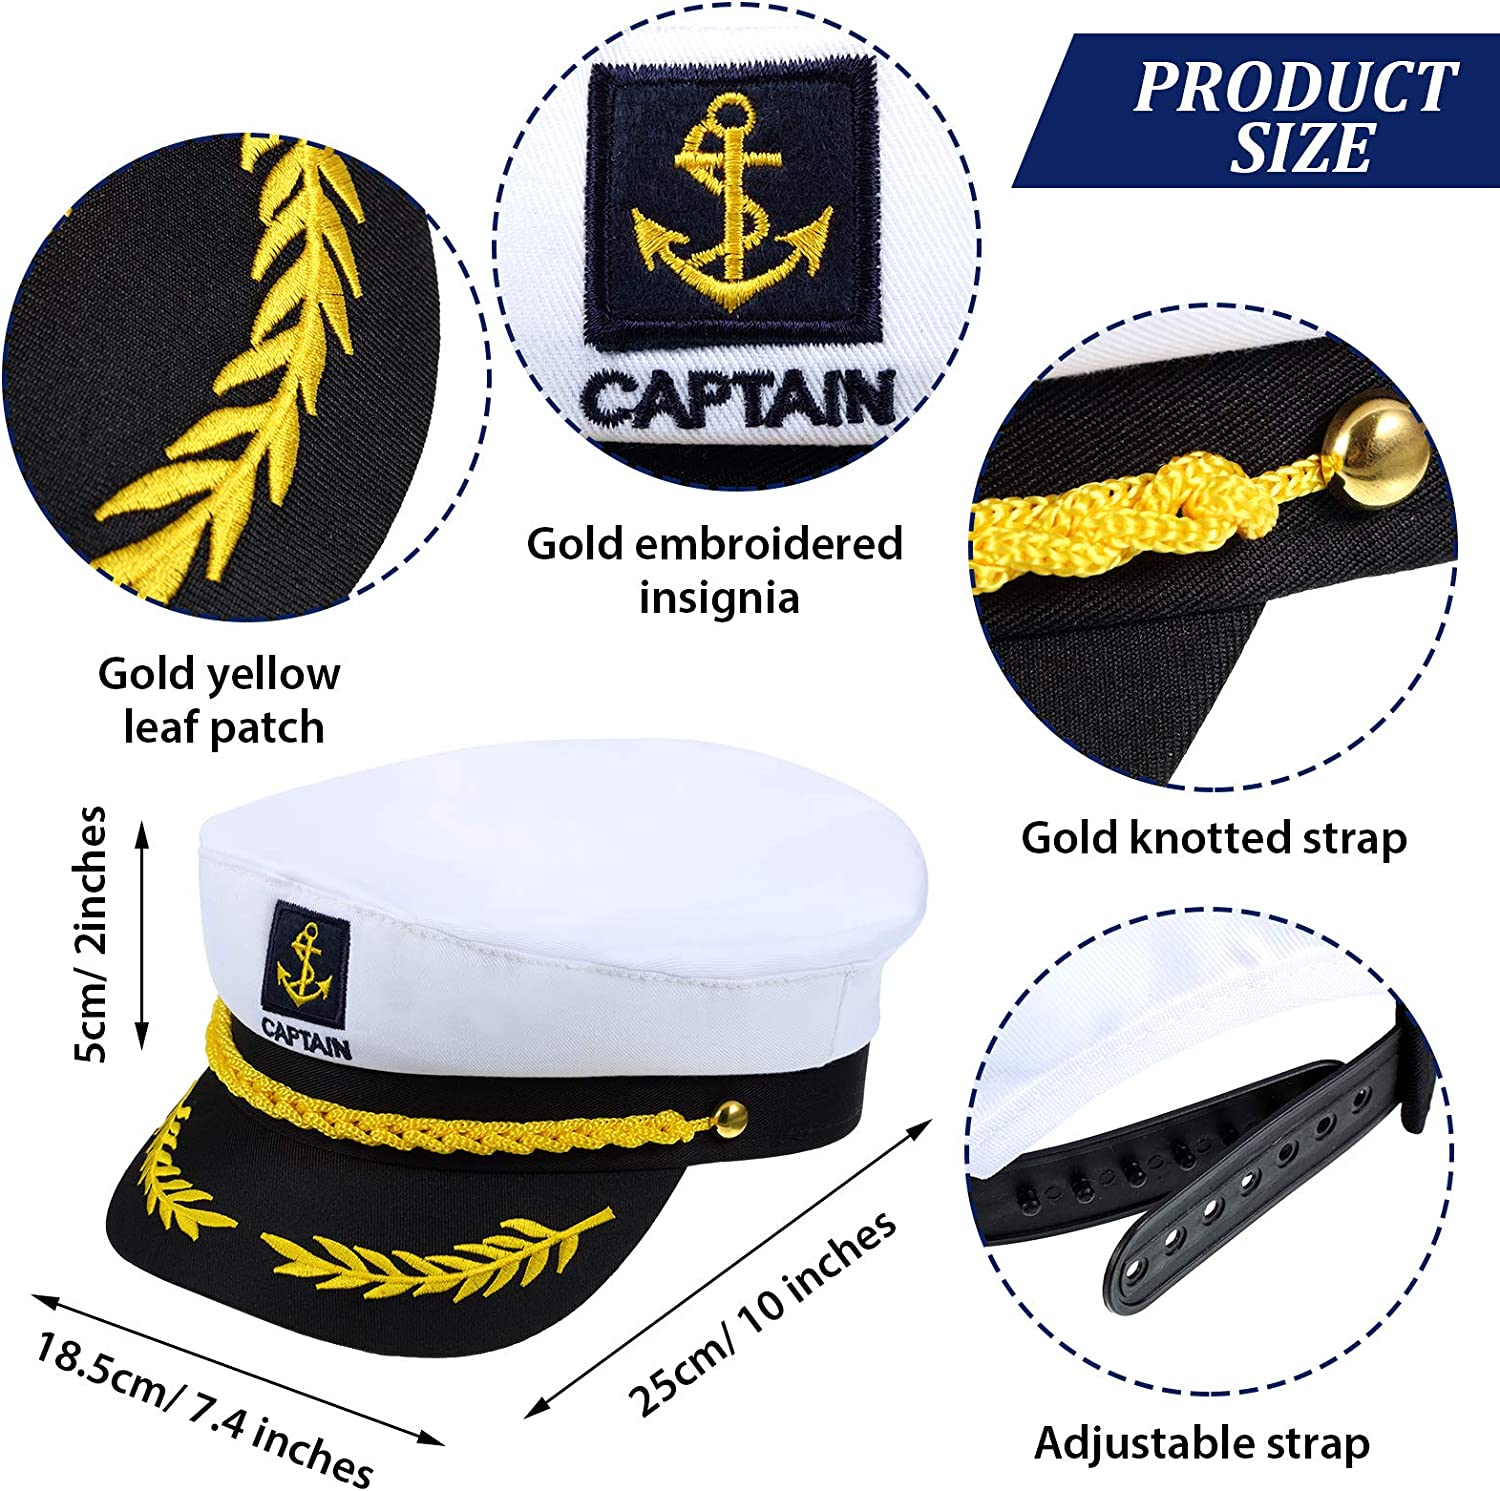 4 Pieces Captain Sailor Costume Set Adjustable Yacht Hat Captain Hat White Sailor Hat Corn Cob Pipes for Women Men Halloween Costume